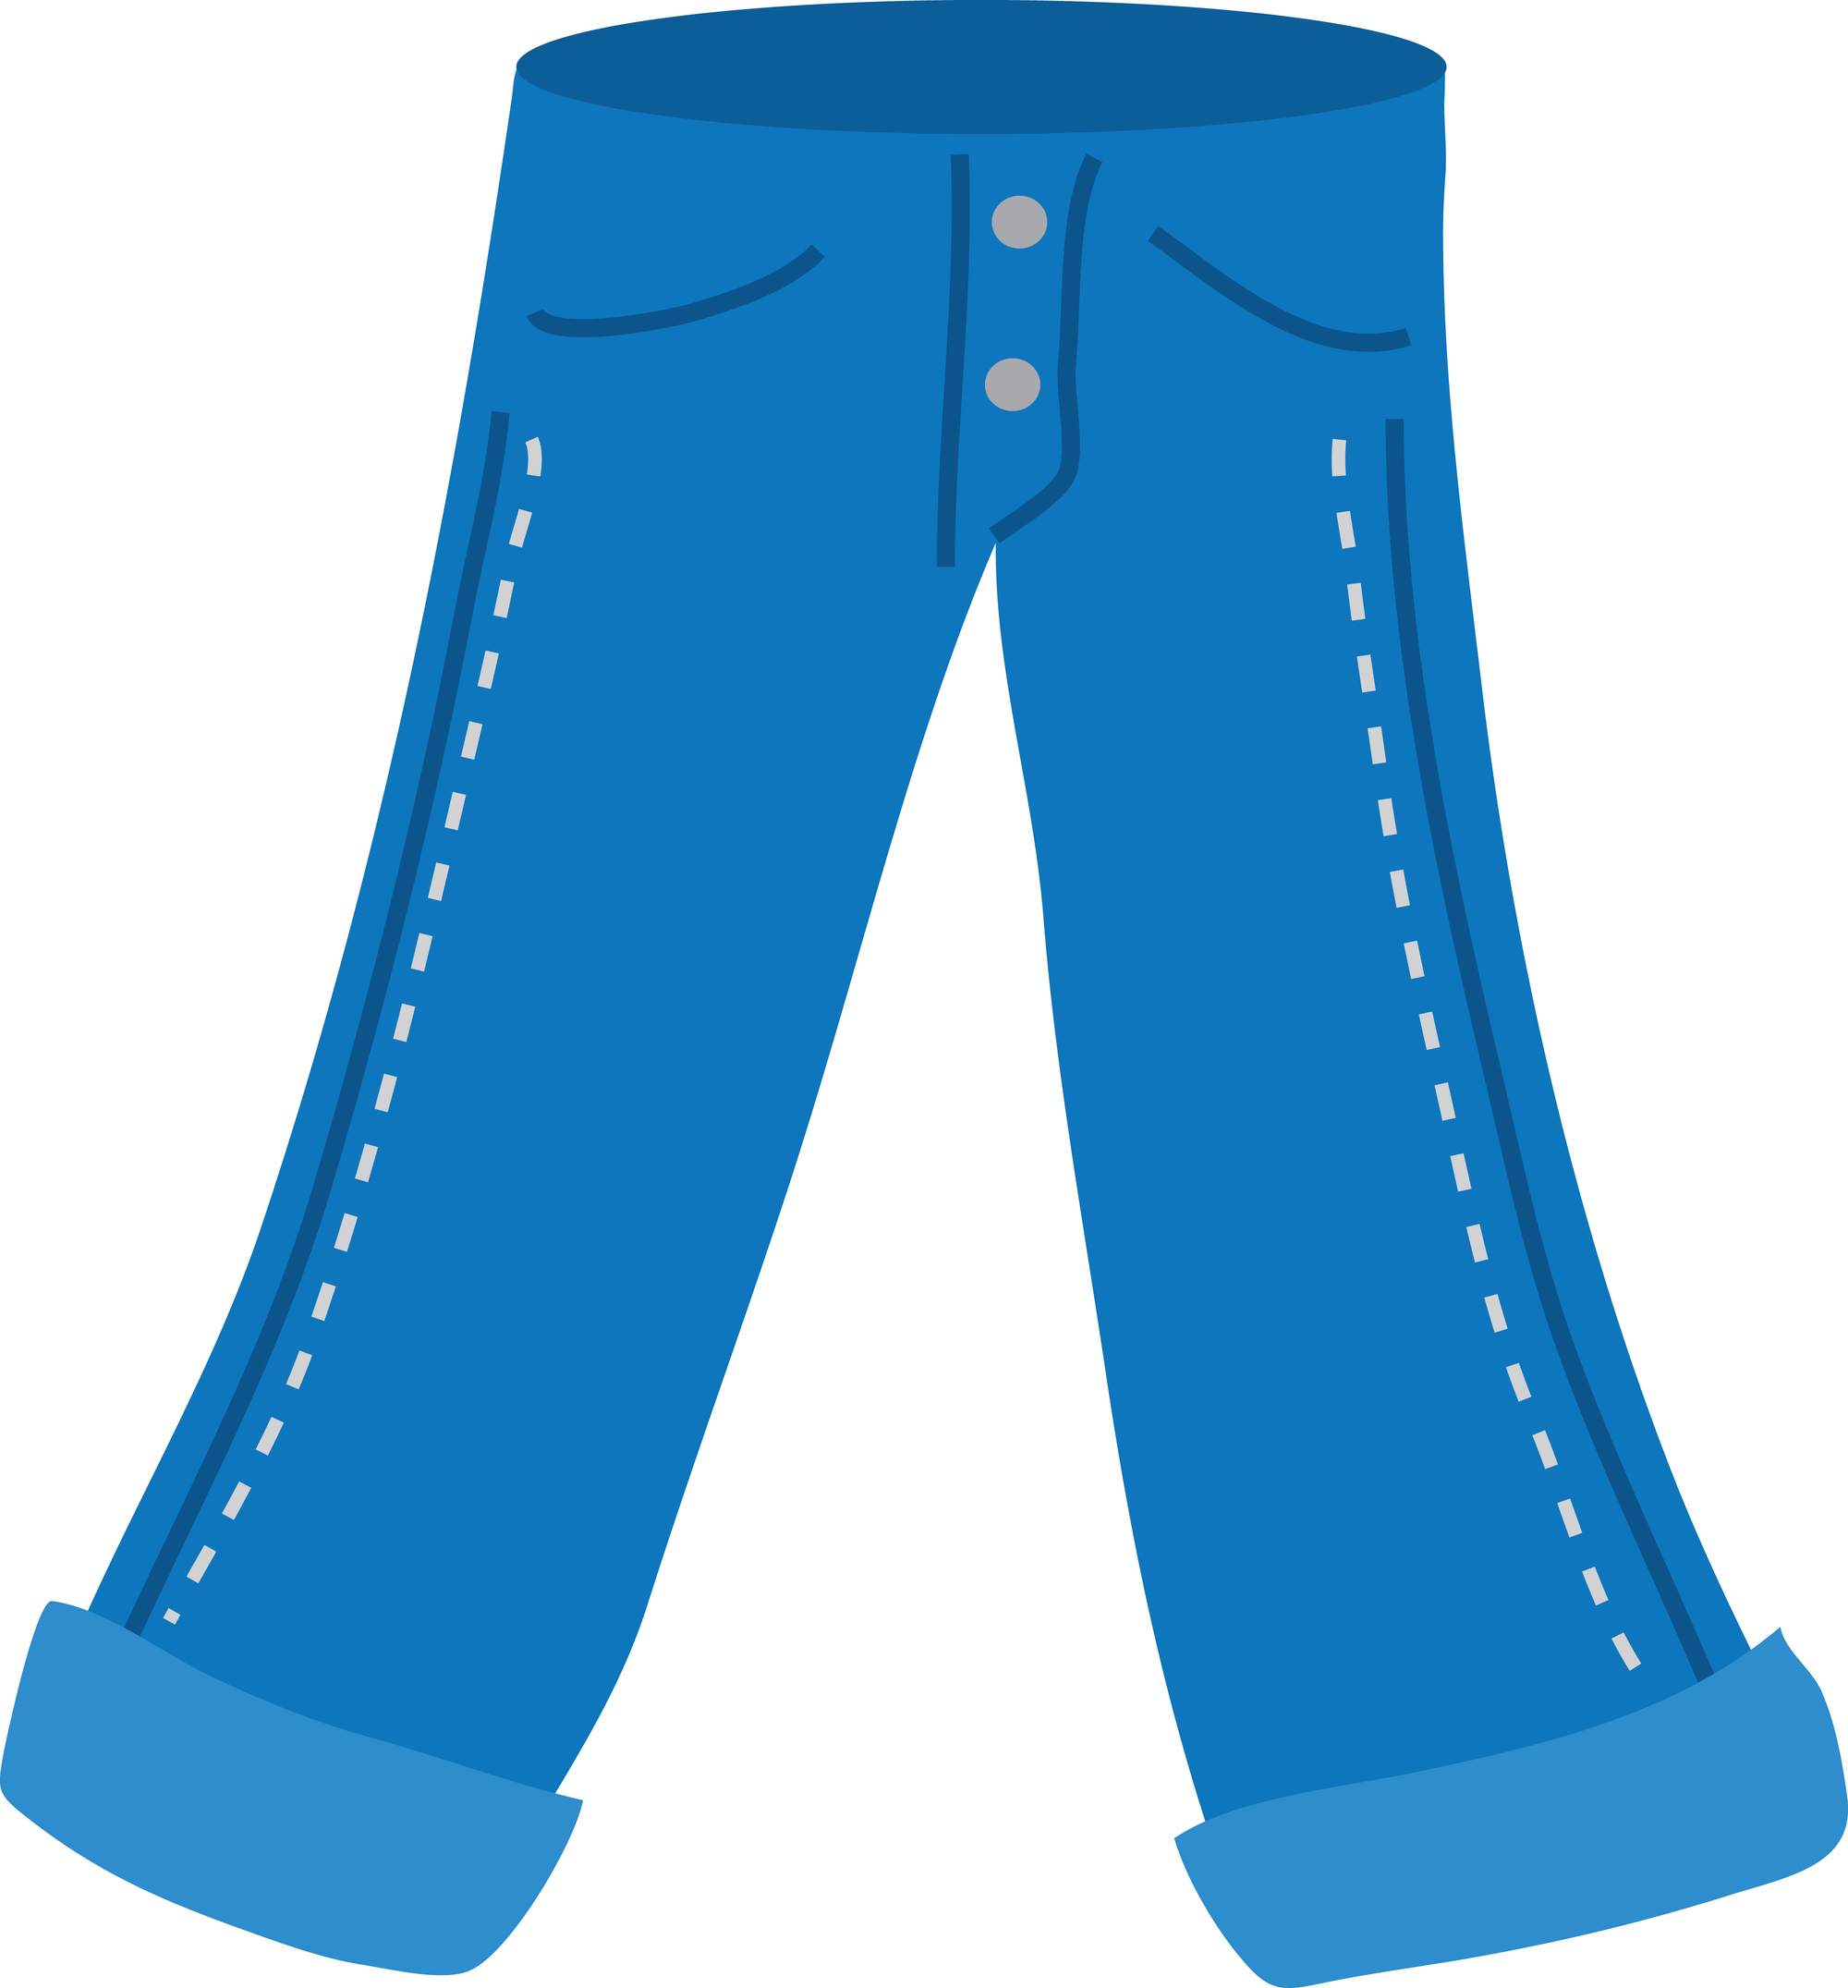 2000x2151 Shirt And Pants Clipart